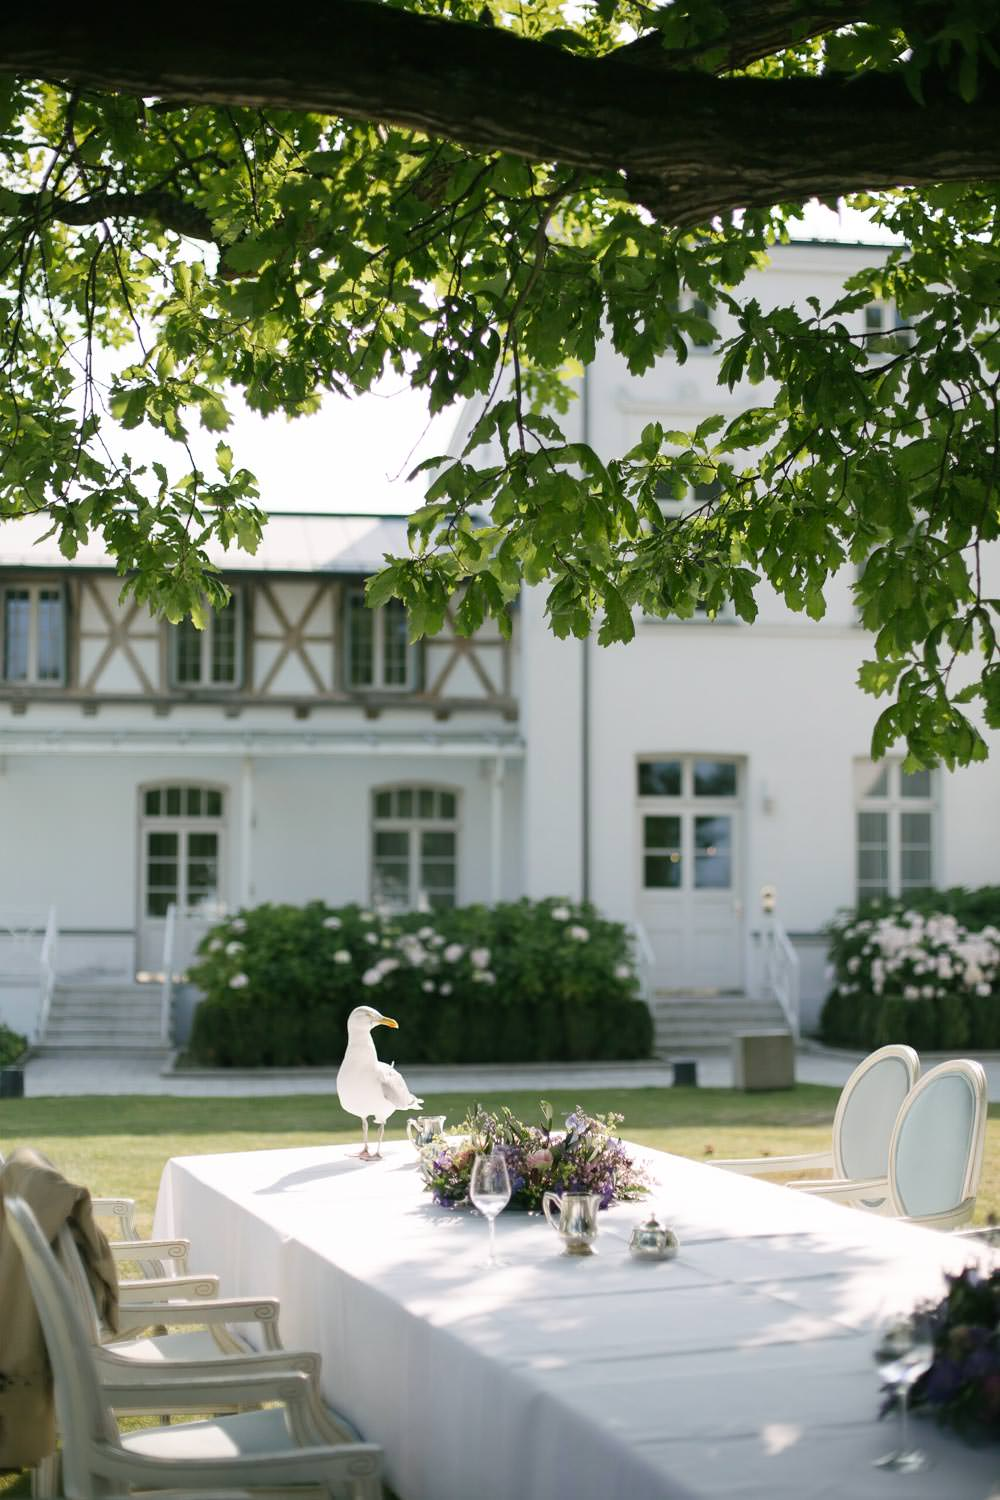 Möwe Seagull Hochzeit Wedding Grand Hotel Heiligendamm